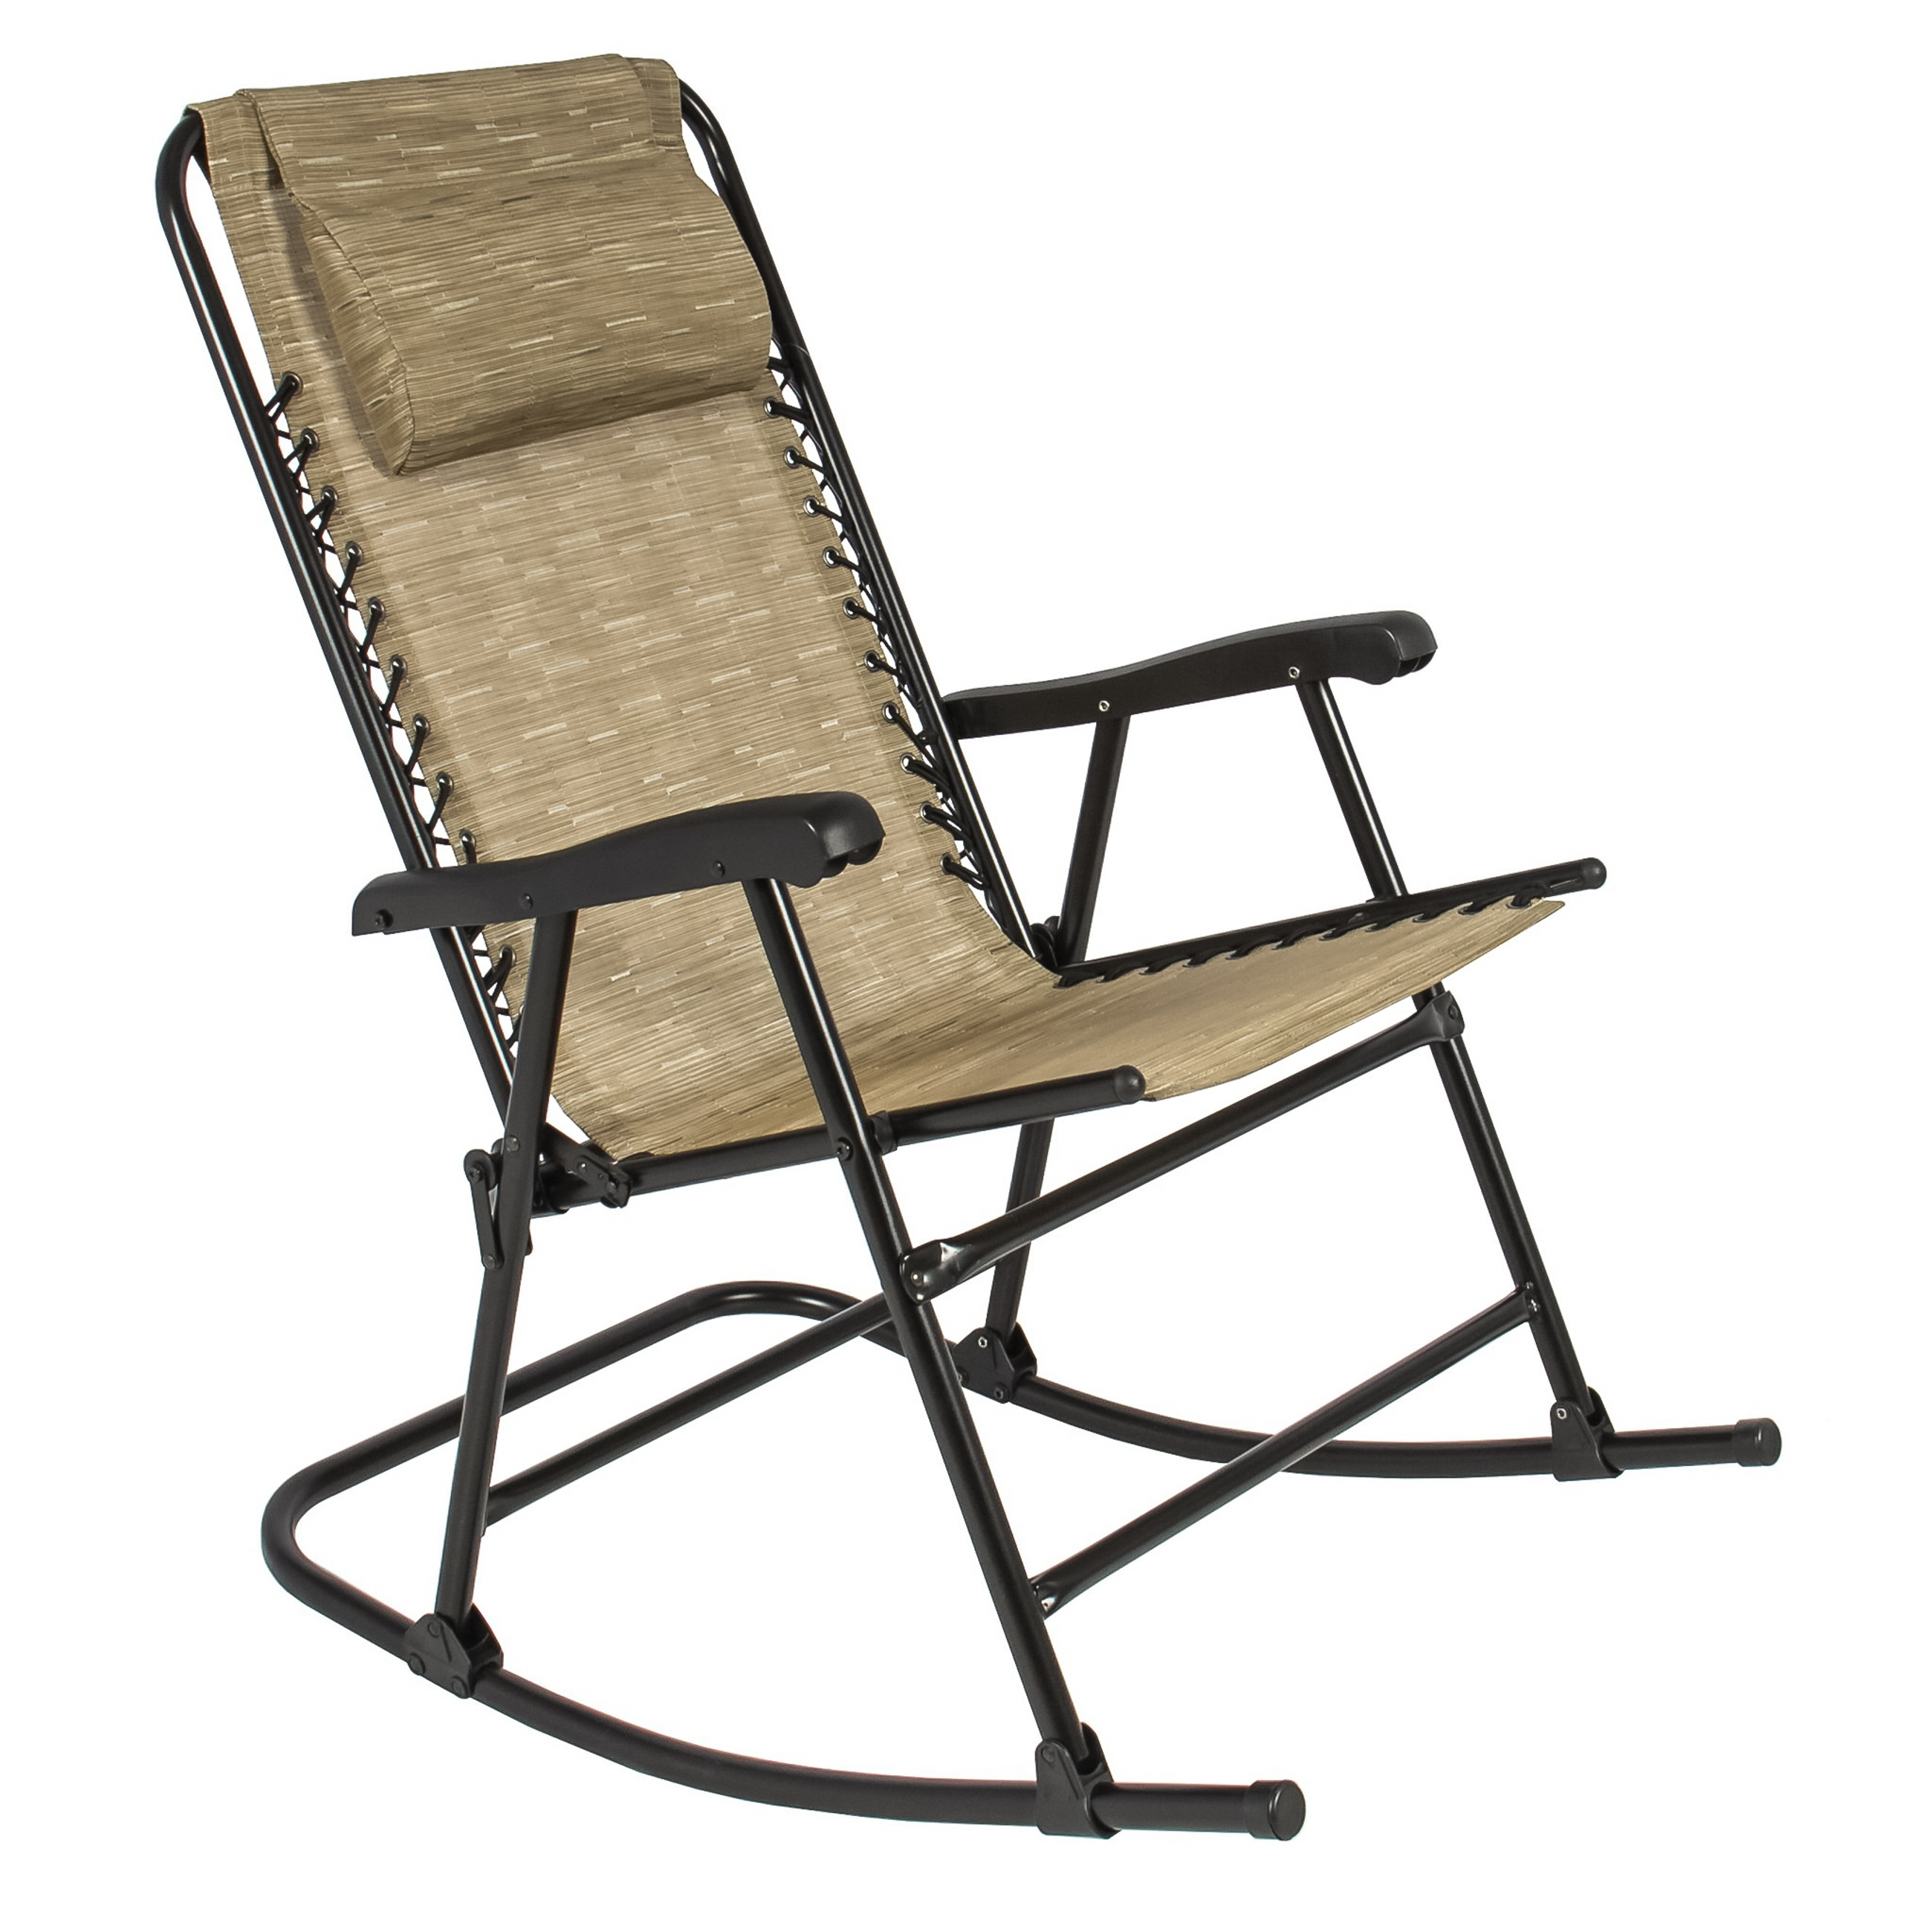 Best Choice Products Foldable Zero Gravity Rocking Patio Recliner Lounge Chair w/ Headrest Pillow - Beige - Walmart.com  sc 1 st  Walmart : foldable rocking chair - lorbestier.org